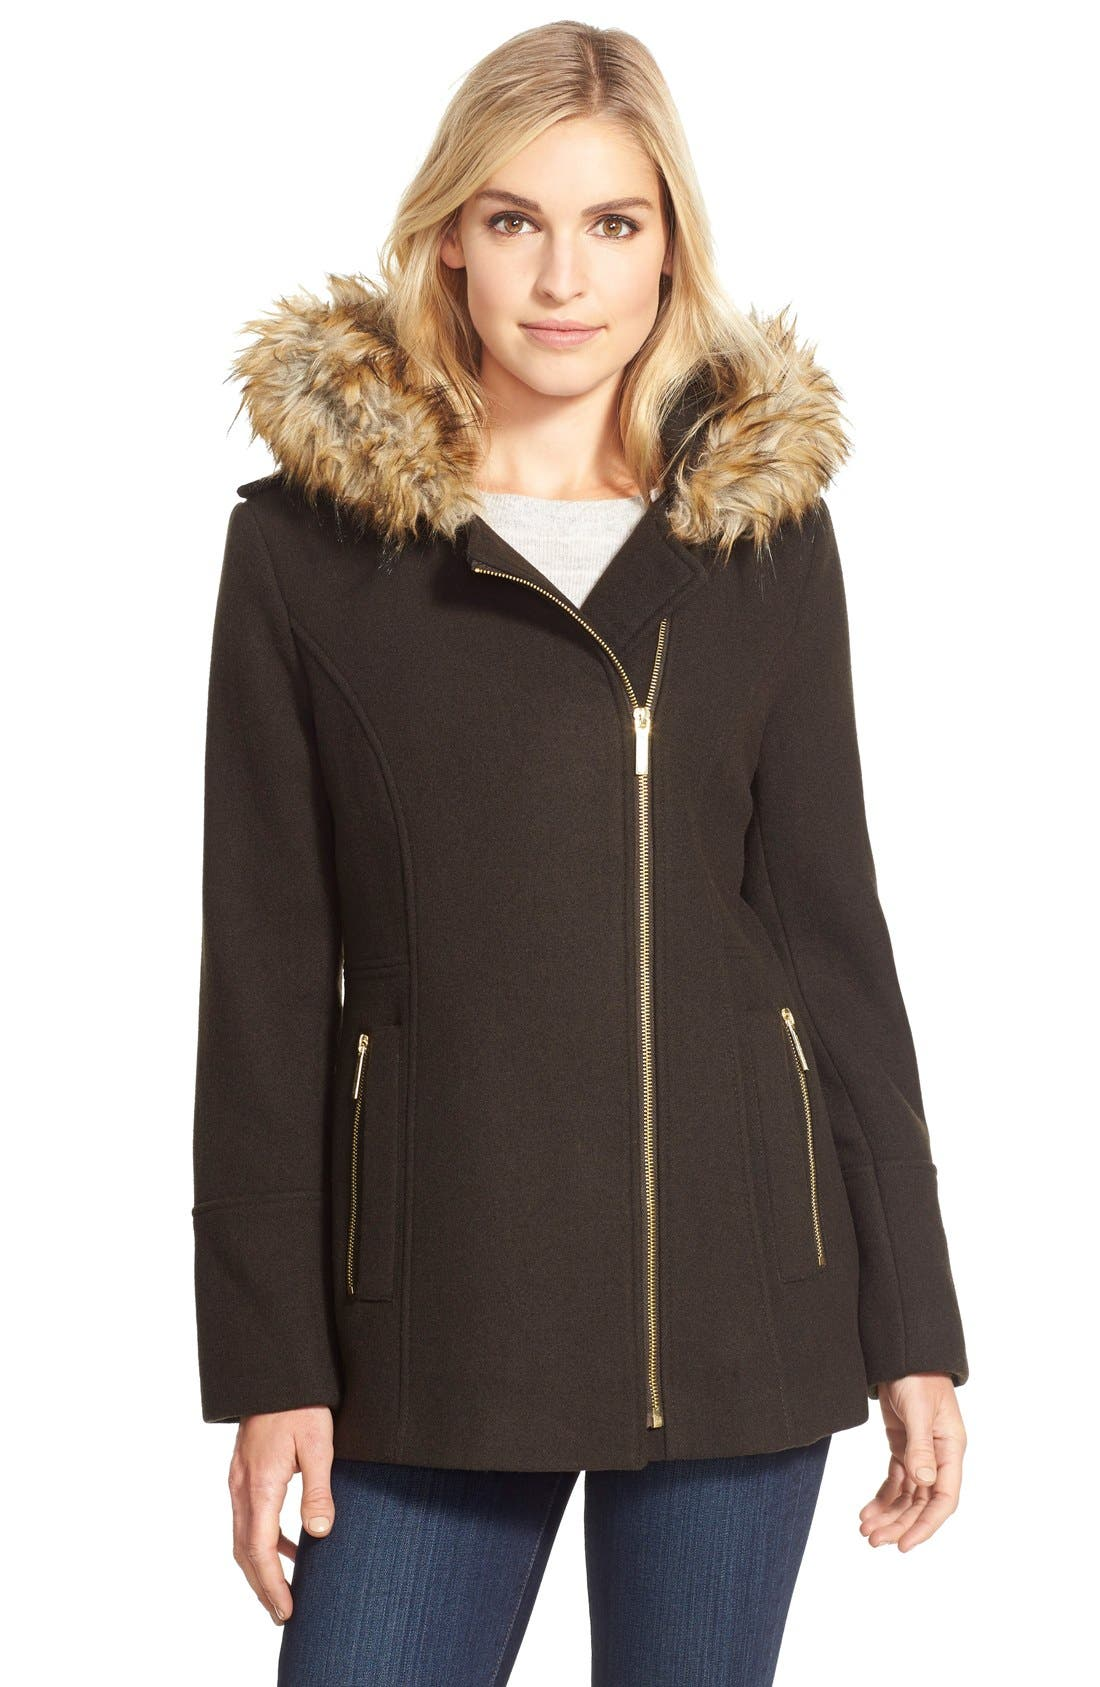 Main Image - <br> MICHAEL Michael Kors Belted Asymmetrical Wool Blend Coat with Faux Fur<br>